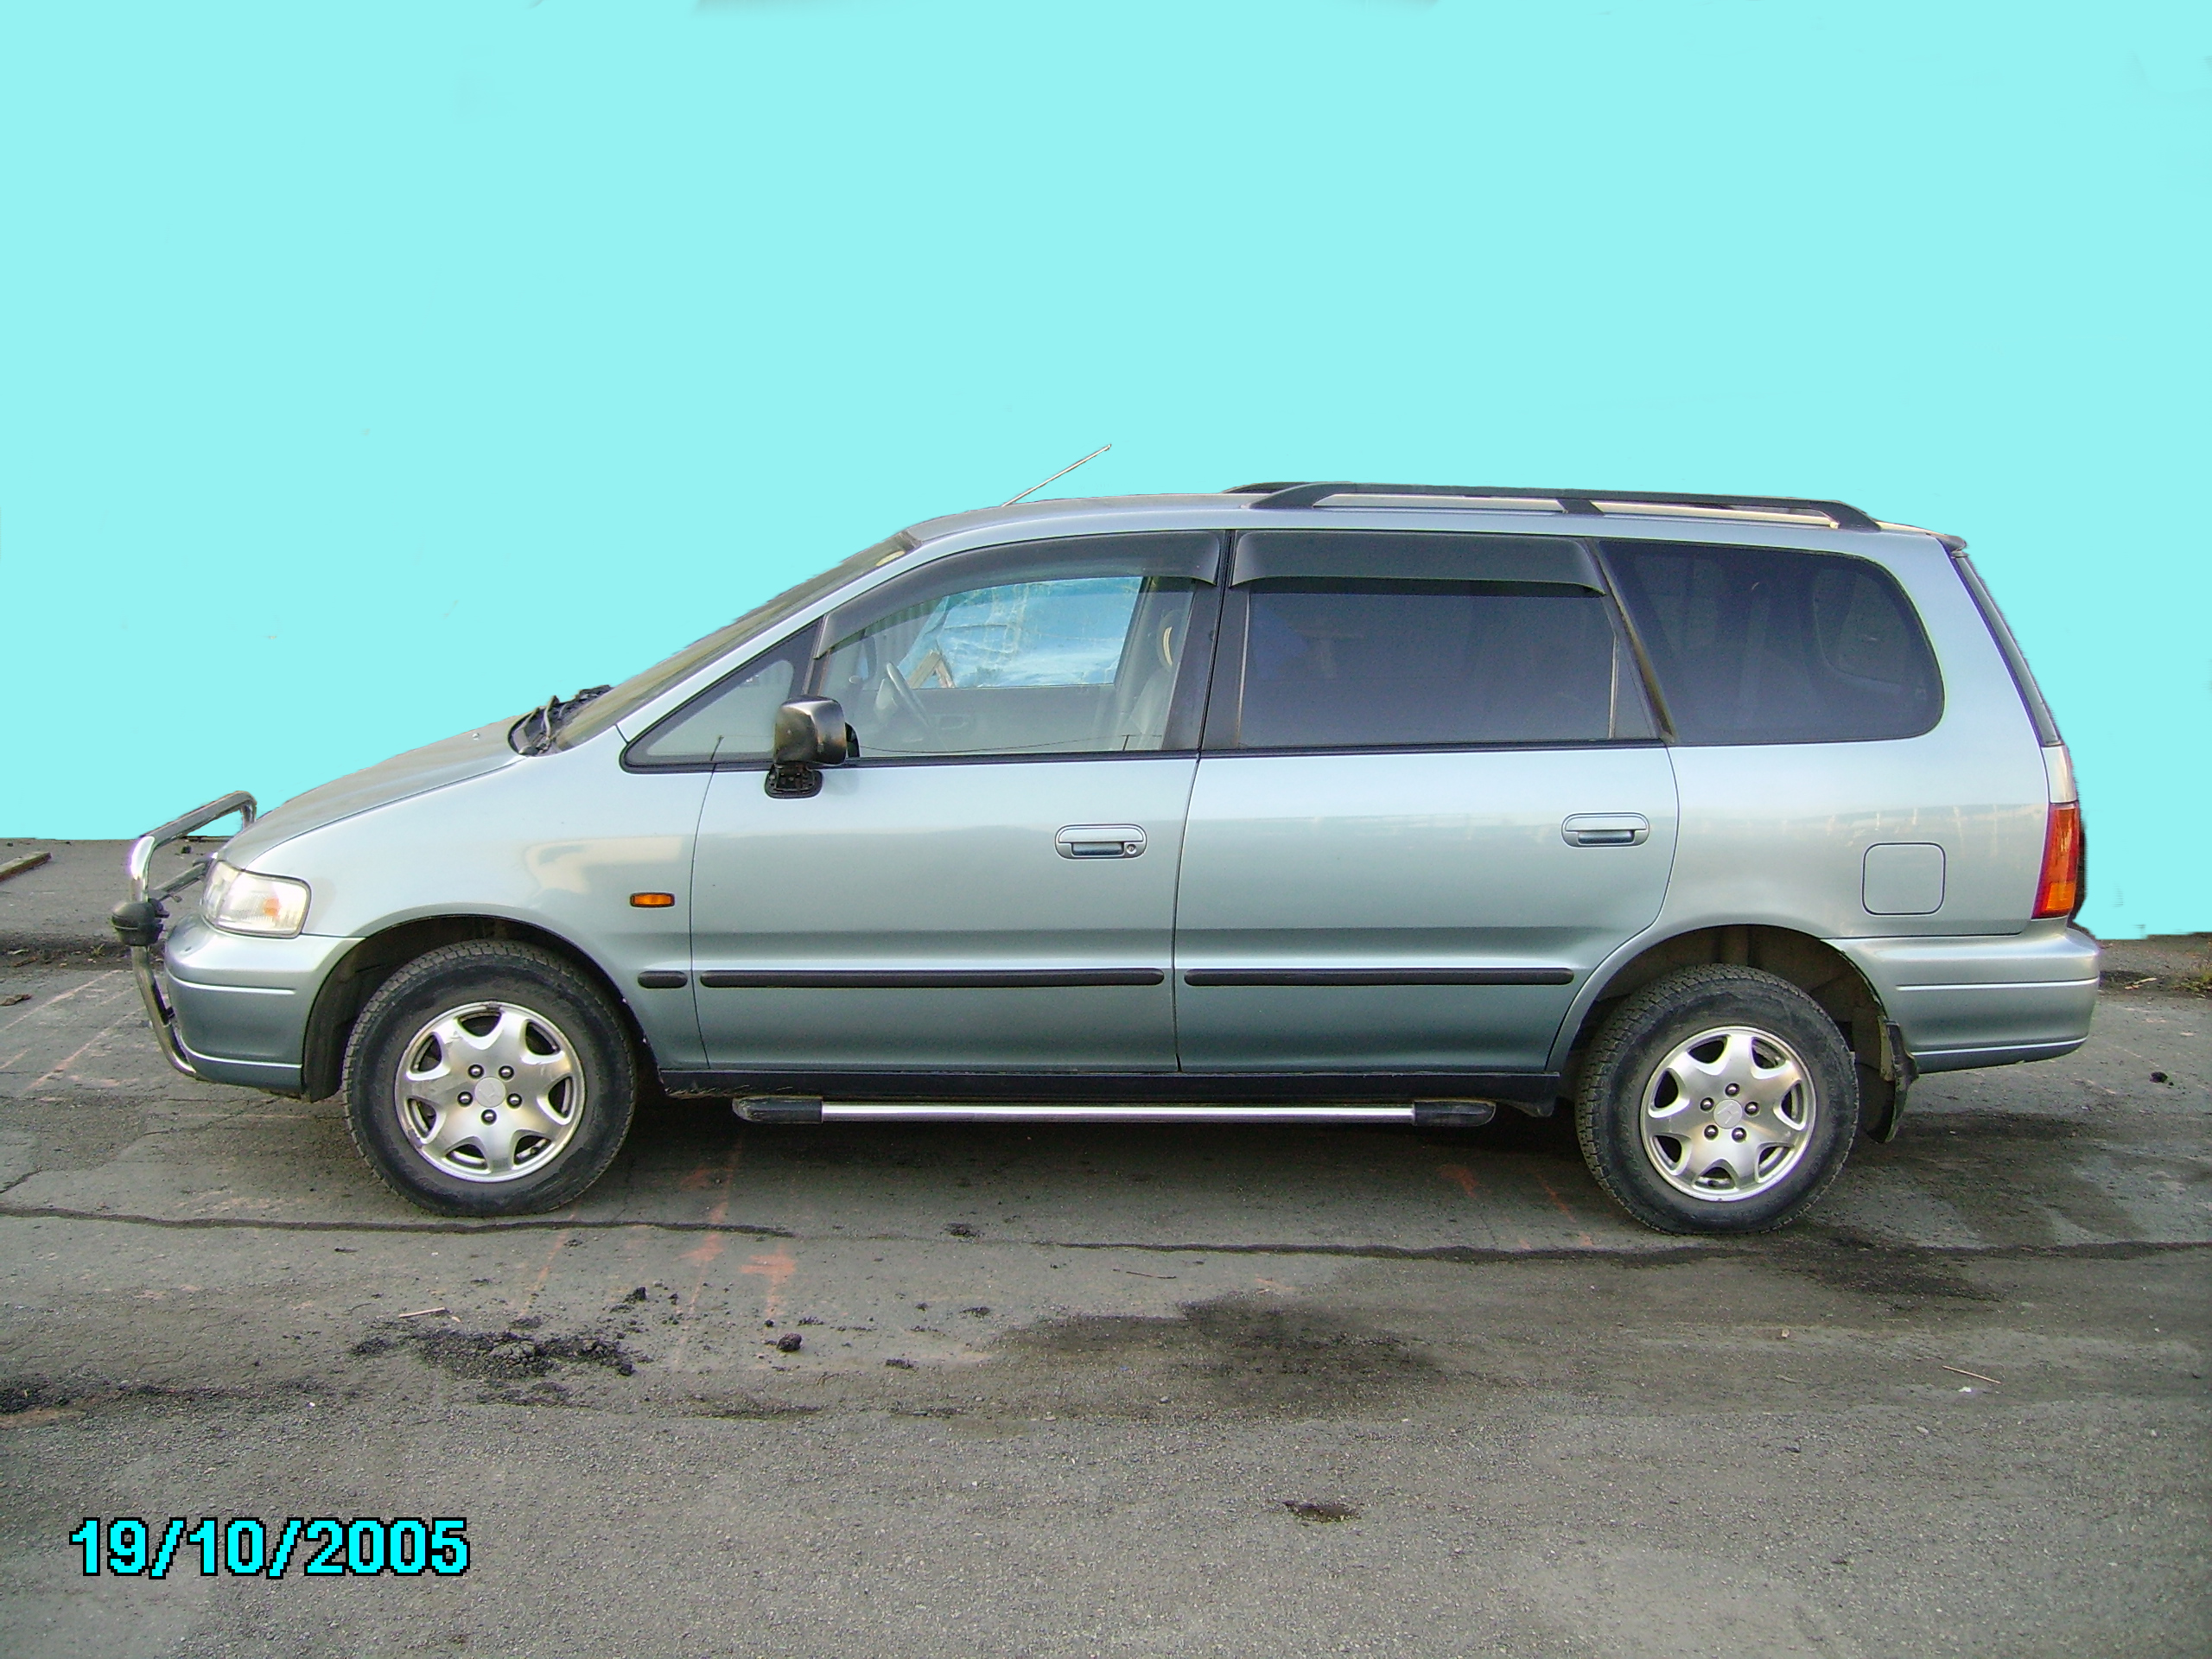 2002 honda odyssey transmission problems complaints autos post. Black Bedroom Furniture Sets. Home Design Ideas